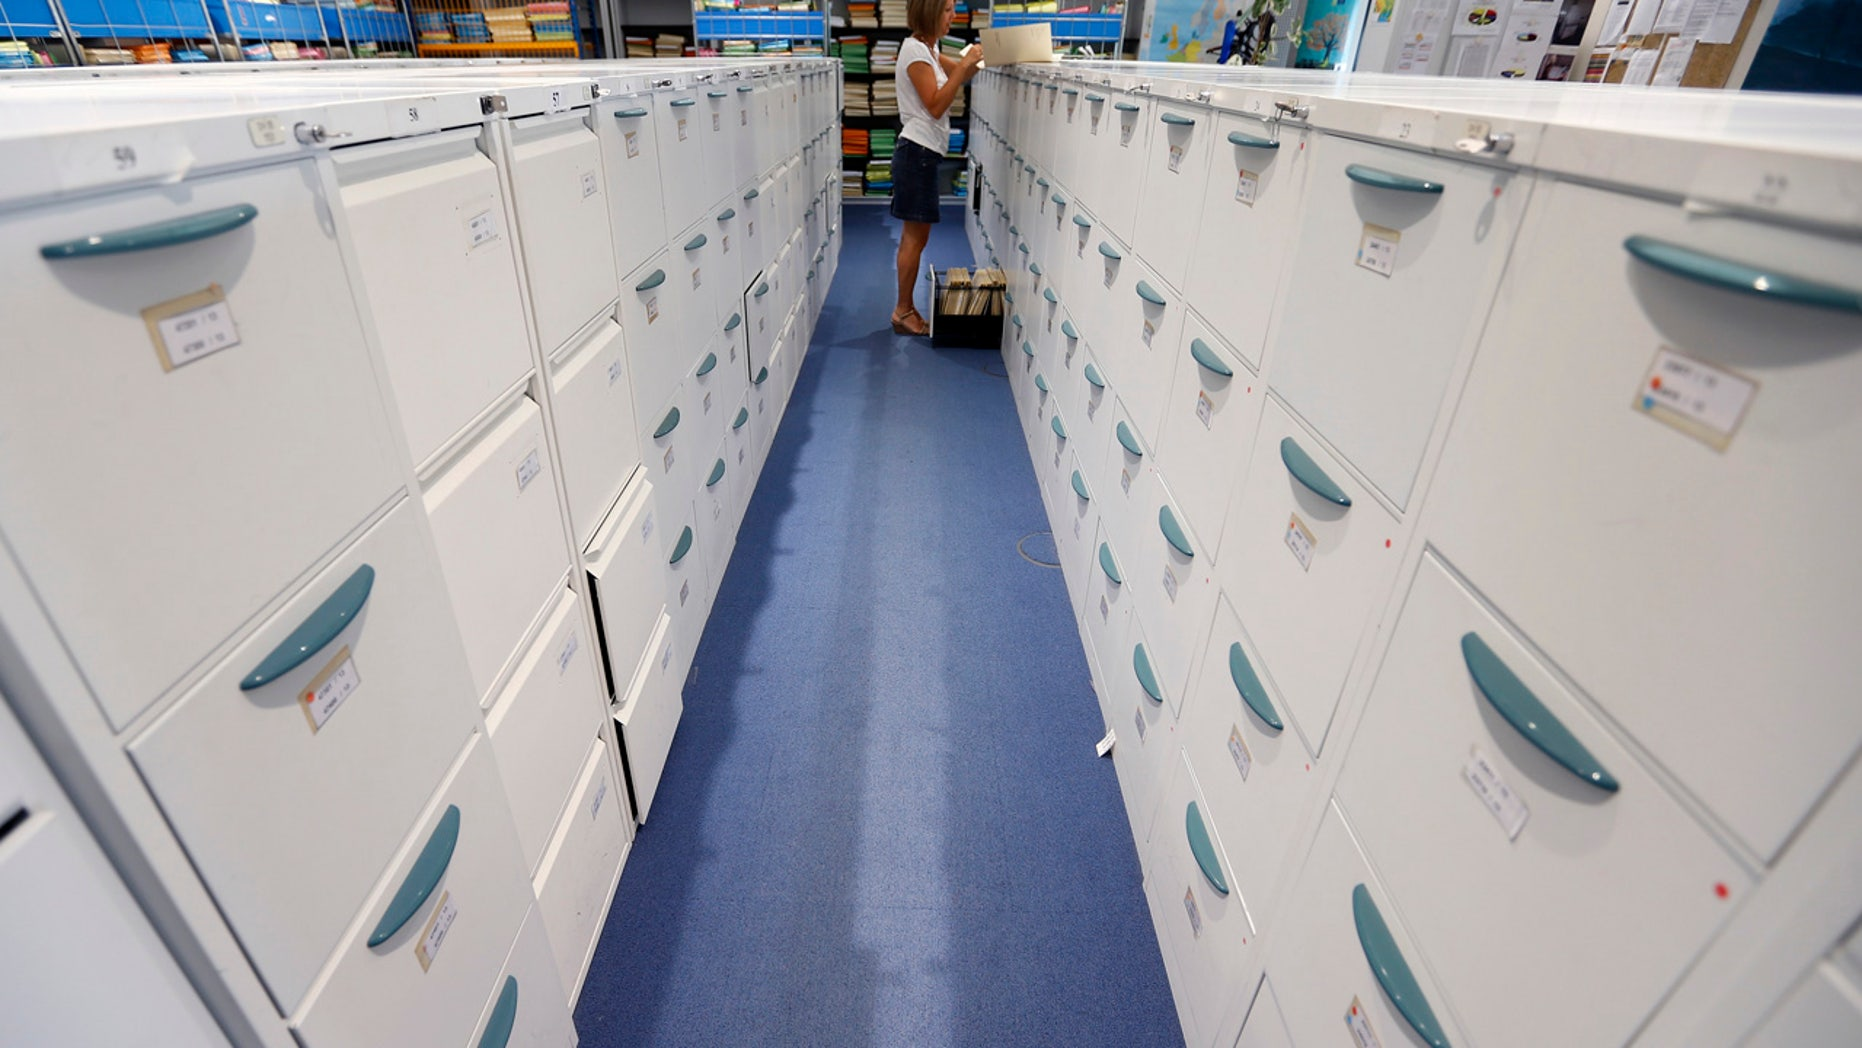 Australian officials are investigating how top-secret documents were left in filing cabinets that were sold at a second-hand shop.